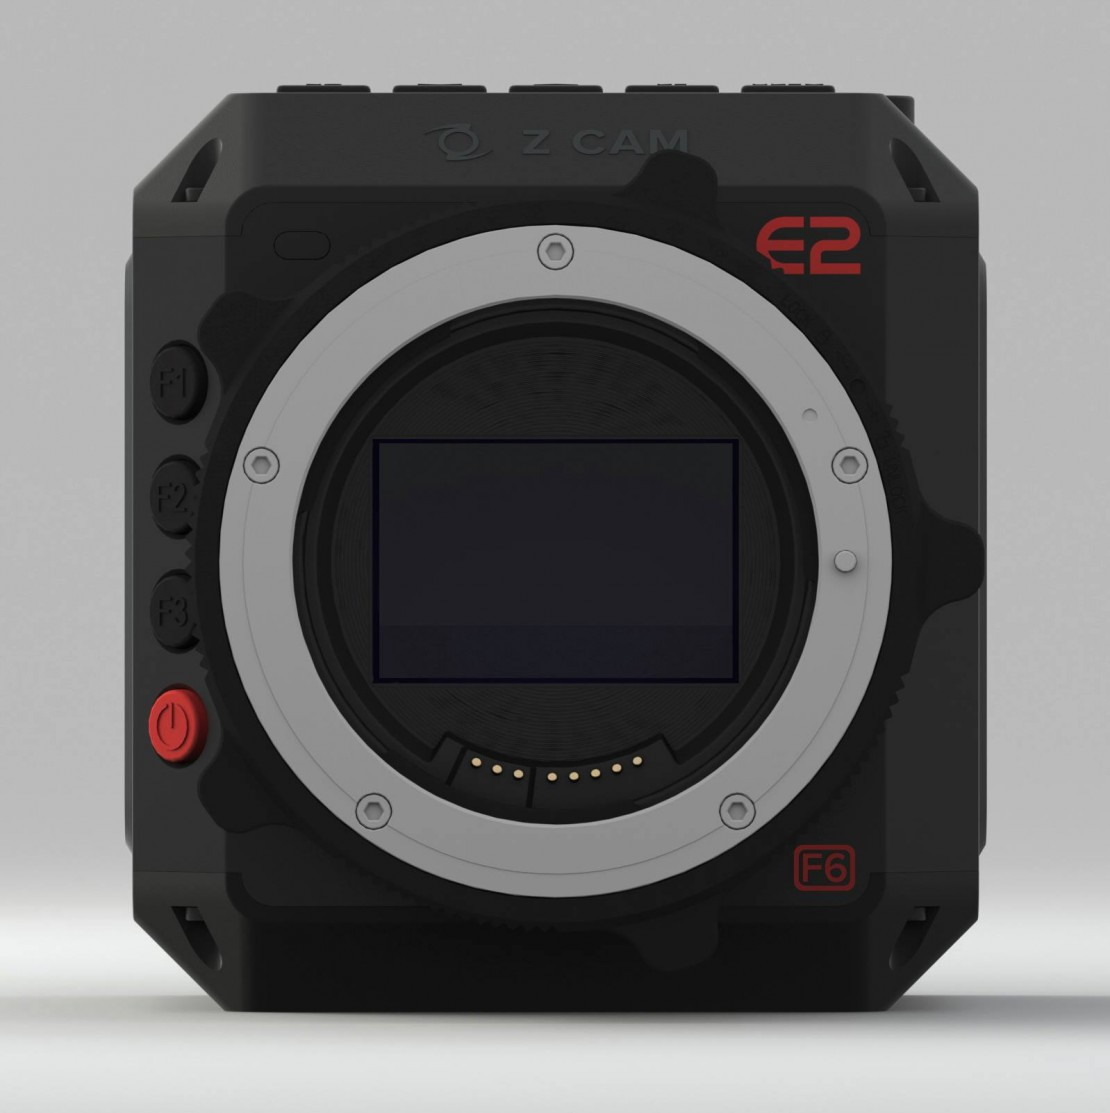 Z Cam E2 Cameras Will Soon Come in Full Frame 8K and 6K Flavors